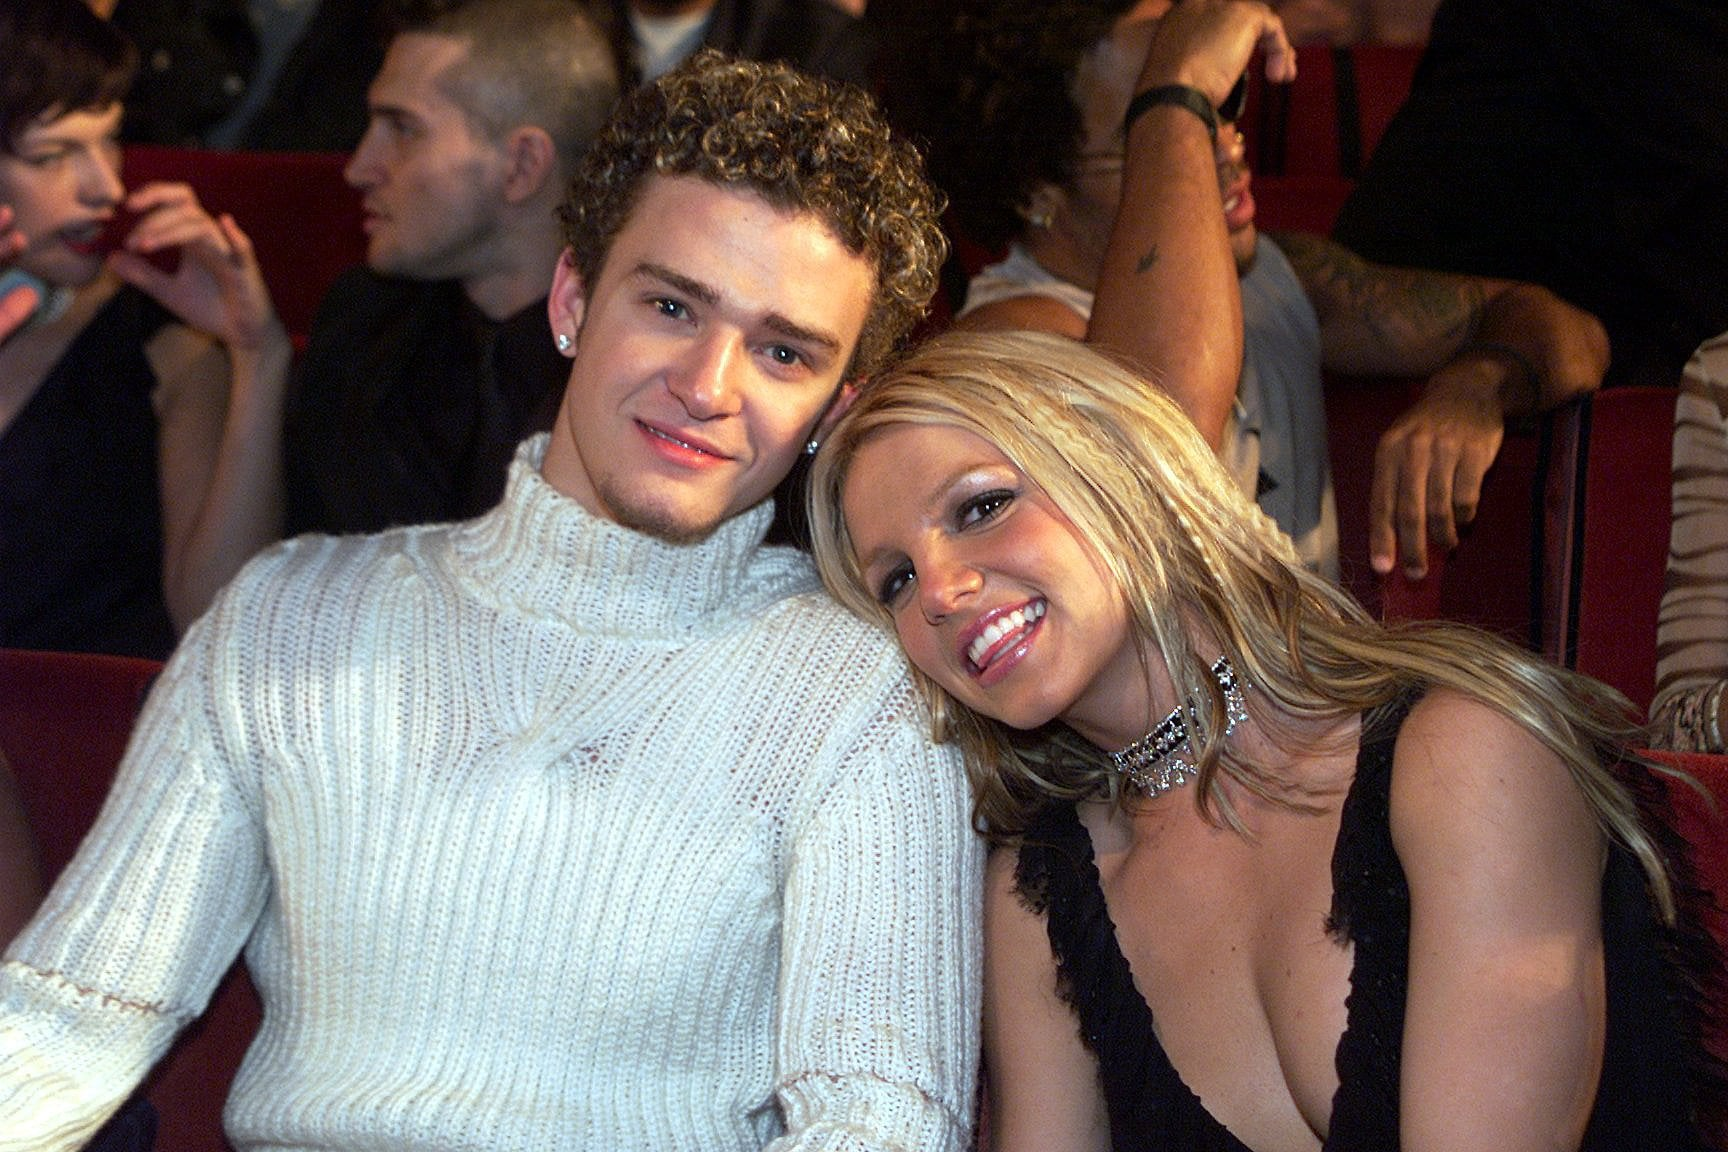 Britney Spears references Justin Timberlake breakup on Instagram